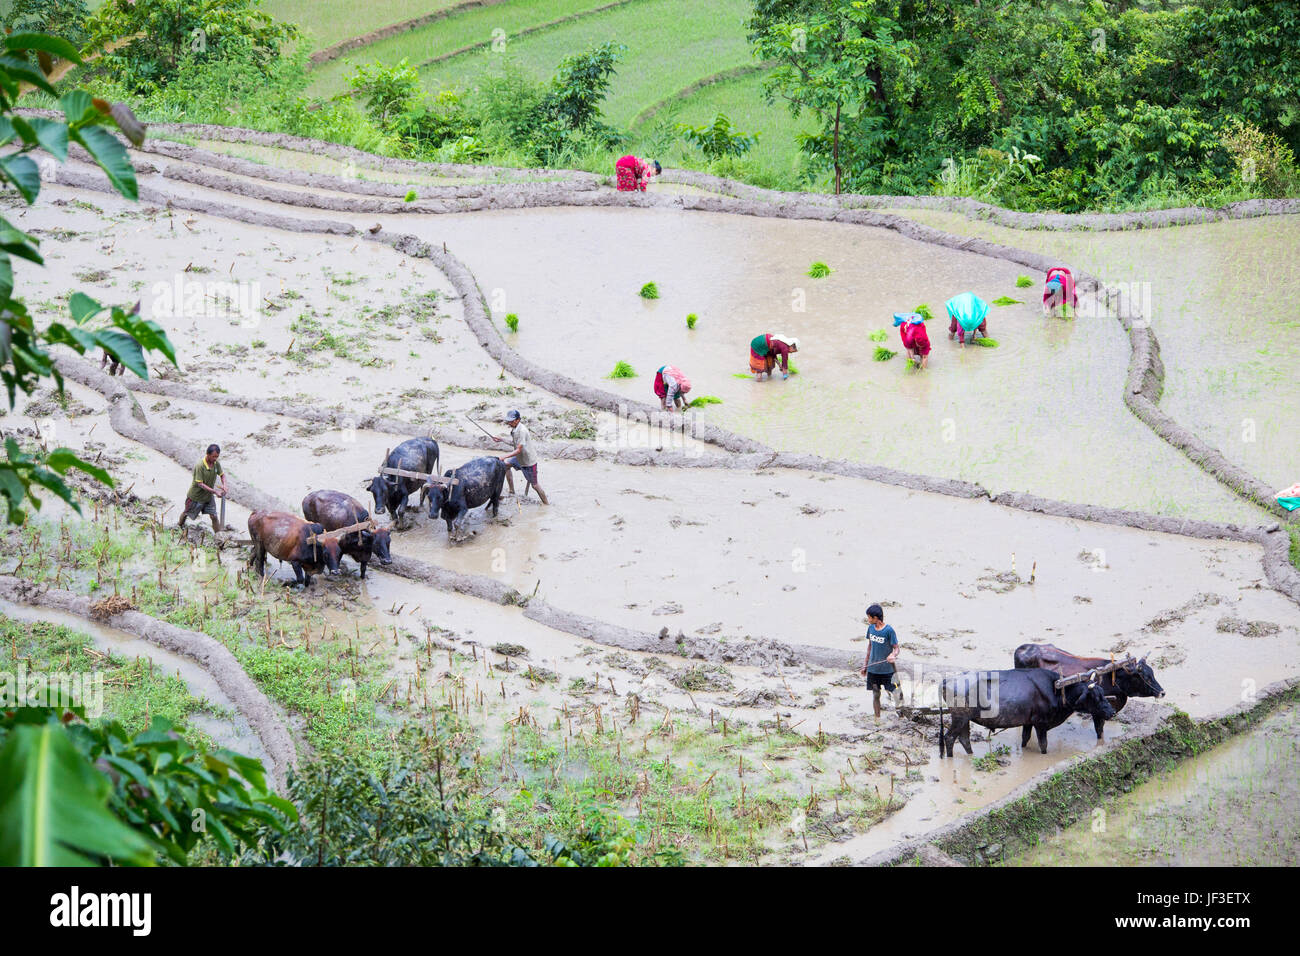 Plowing rice fields with livestock, Nuwakot district, Nepal - Stock Image